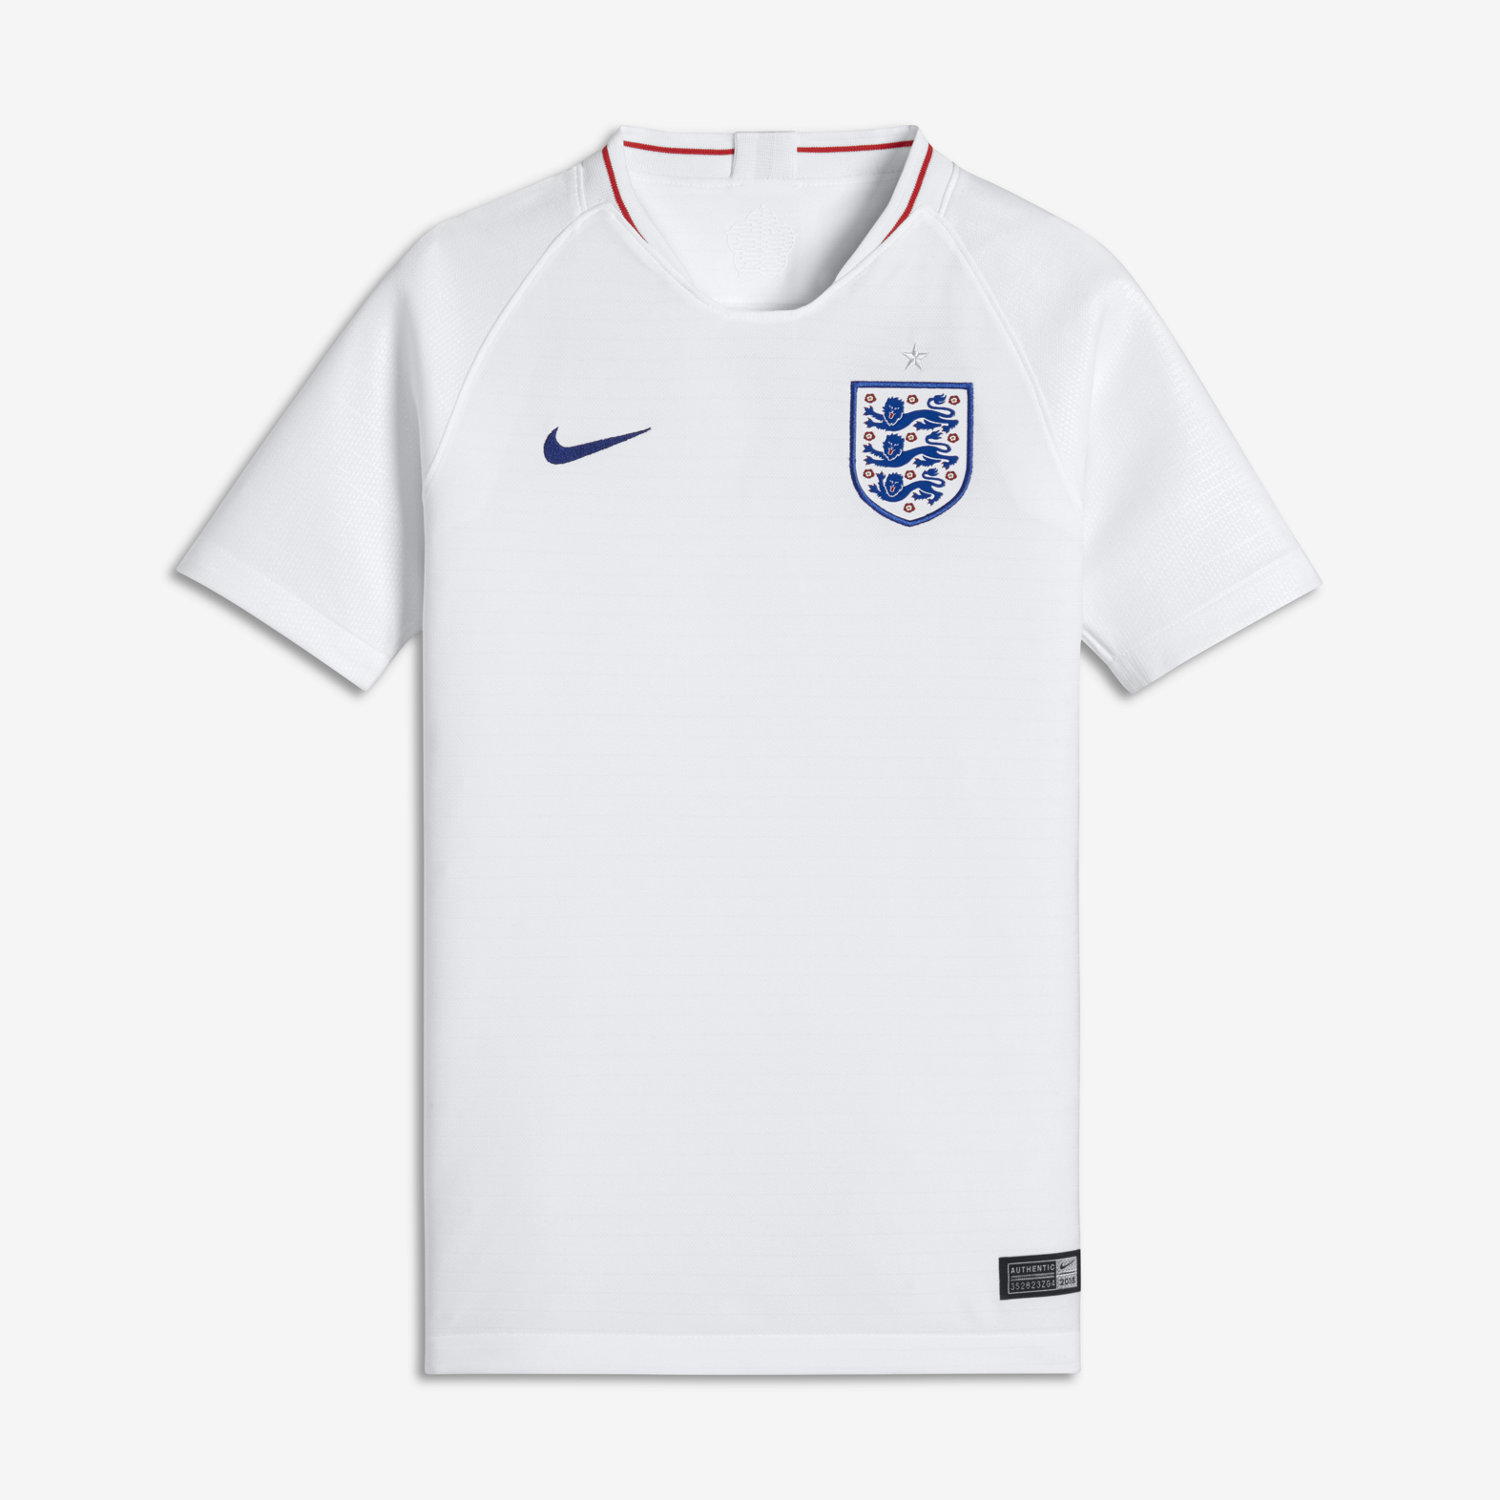 2018 England Stadium Home Older Kids  Football Shirt. Nike.com UK 9547f1ab02c0